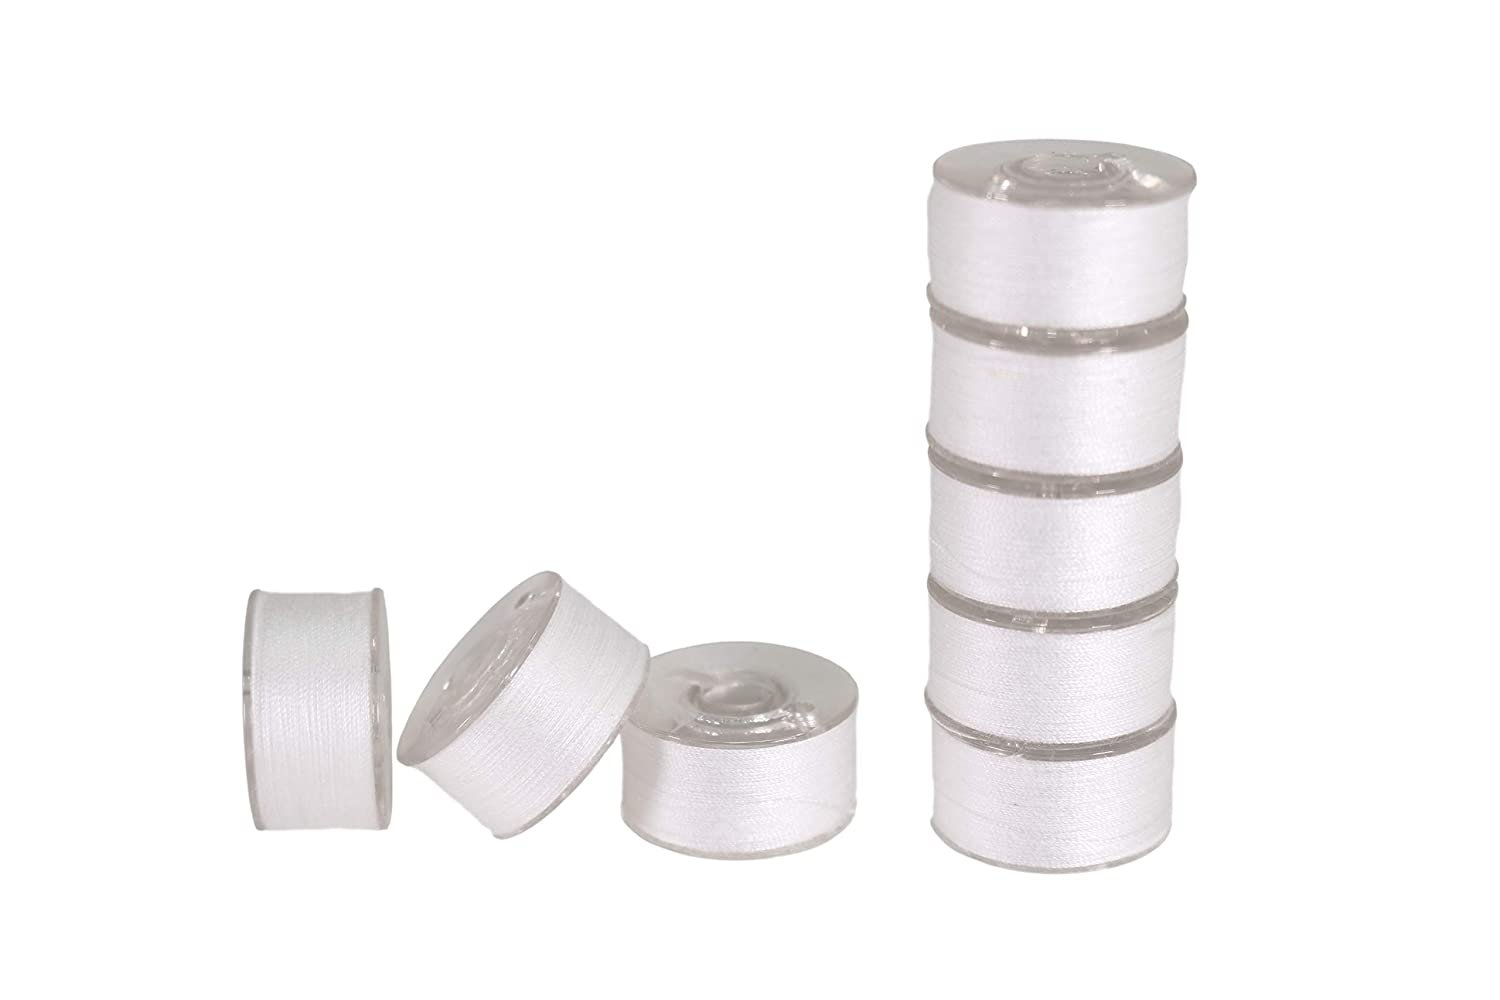 LIN 144 Pieces of White 15//A 156 A 90wt Polyester Spun Prewound Thread Bobbins for Embroidery Sewing Machines Complete with 8 Bobbin Buddies